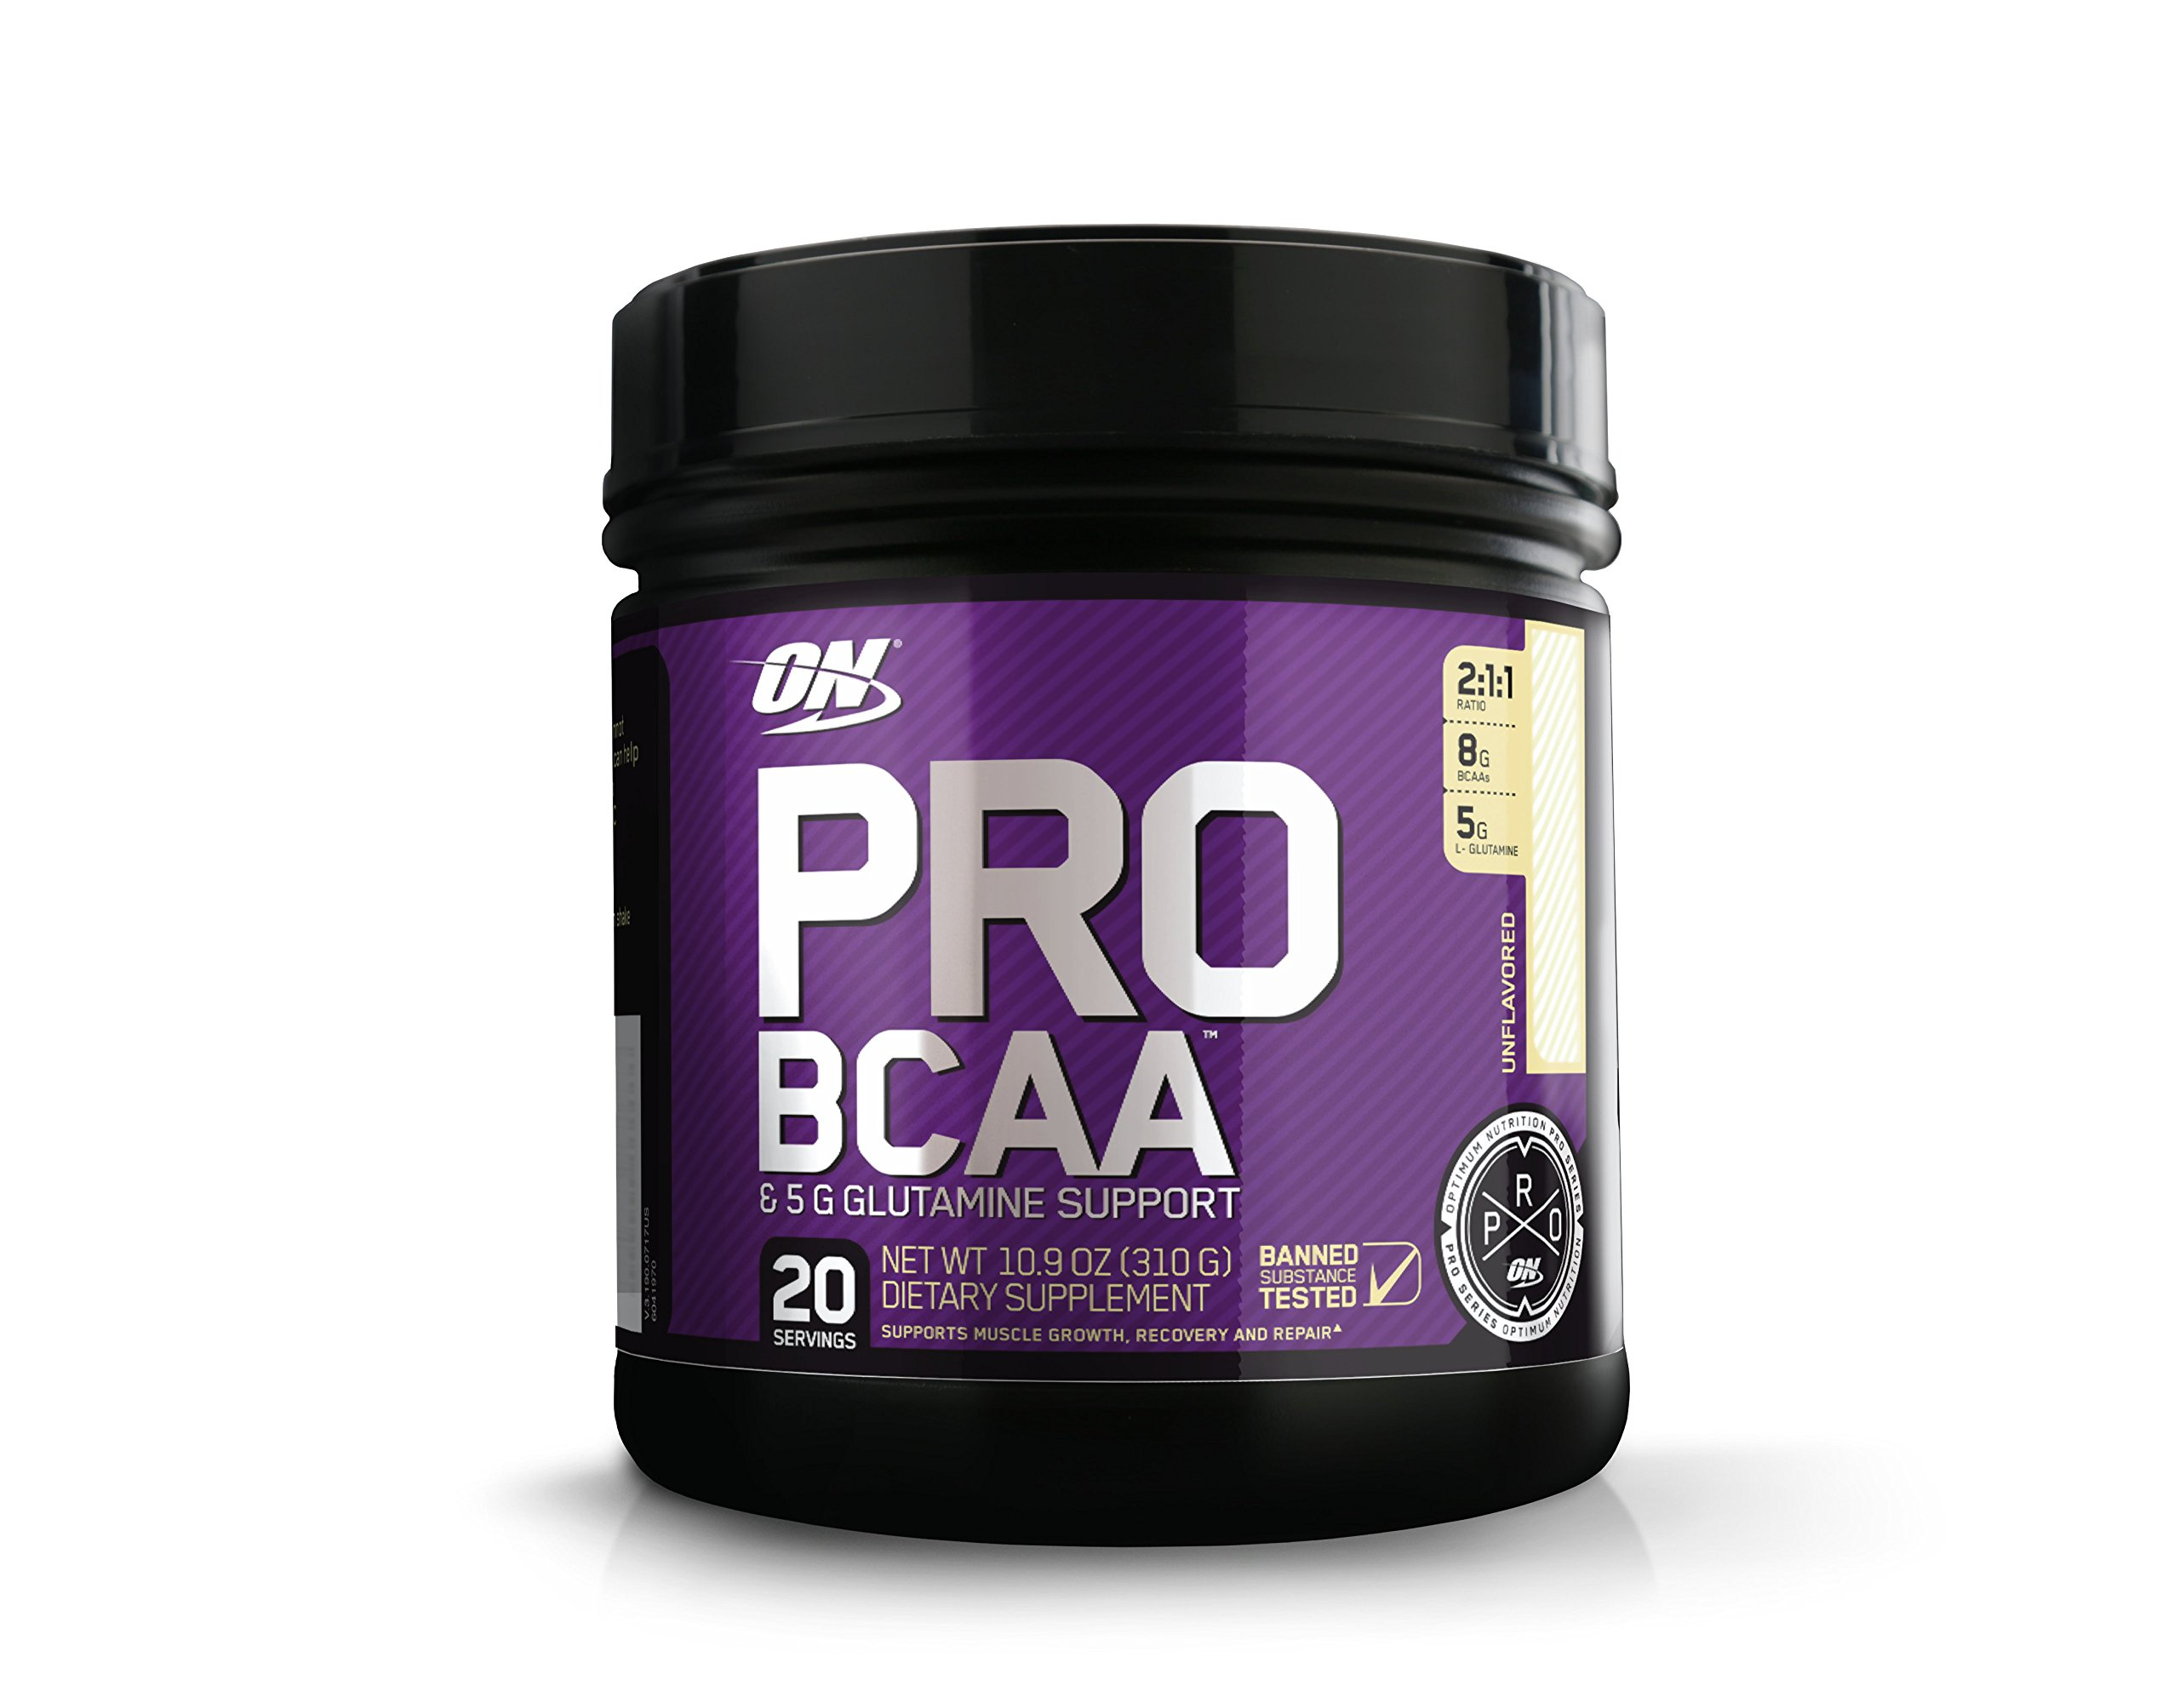 OPTIMUM NUTRITION Pro BCAA Powder with Glutamine, Unflavored, Keto Friendly Branched Chain Amino Acids, 20 Servings, 10.9 Oz (Packaging May Vary)